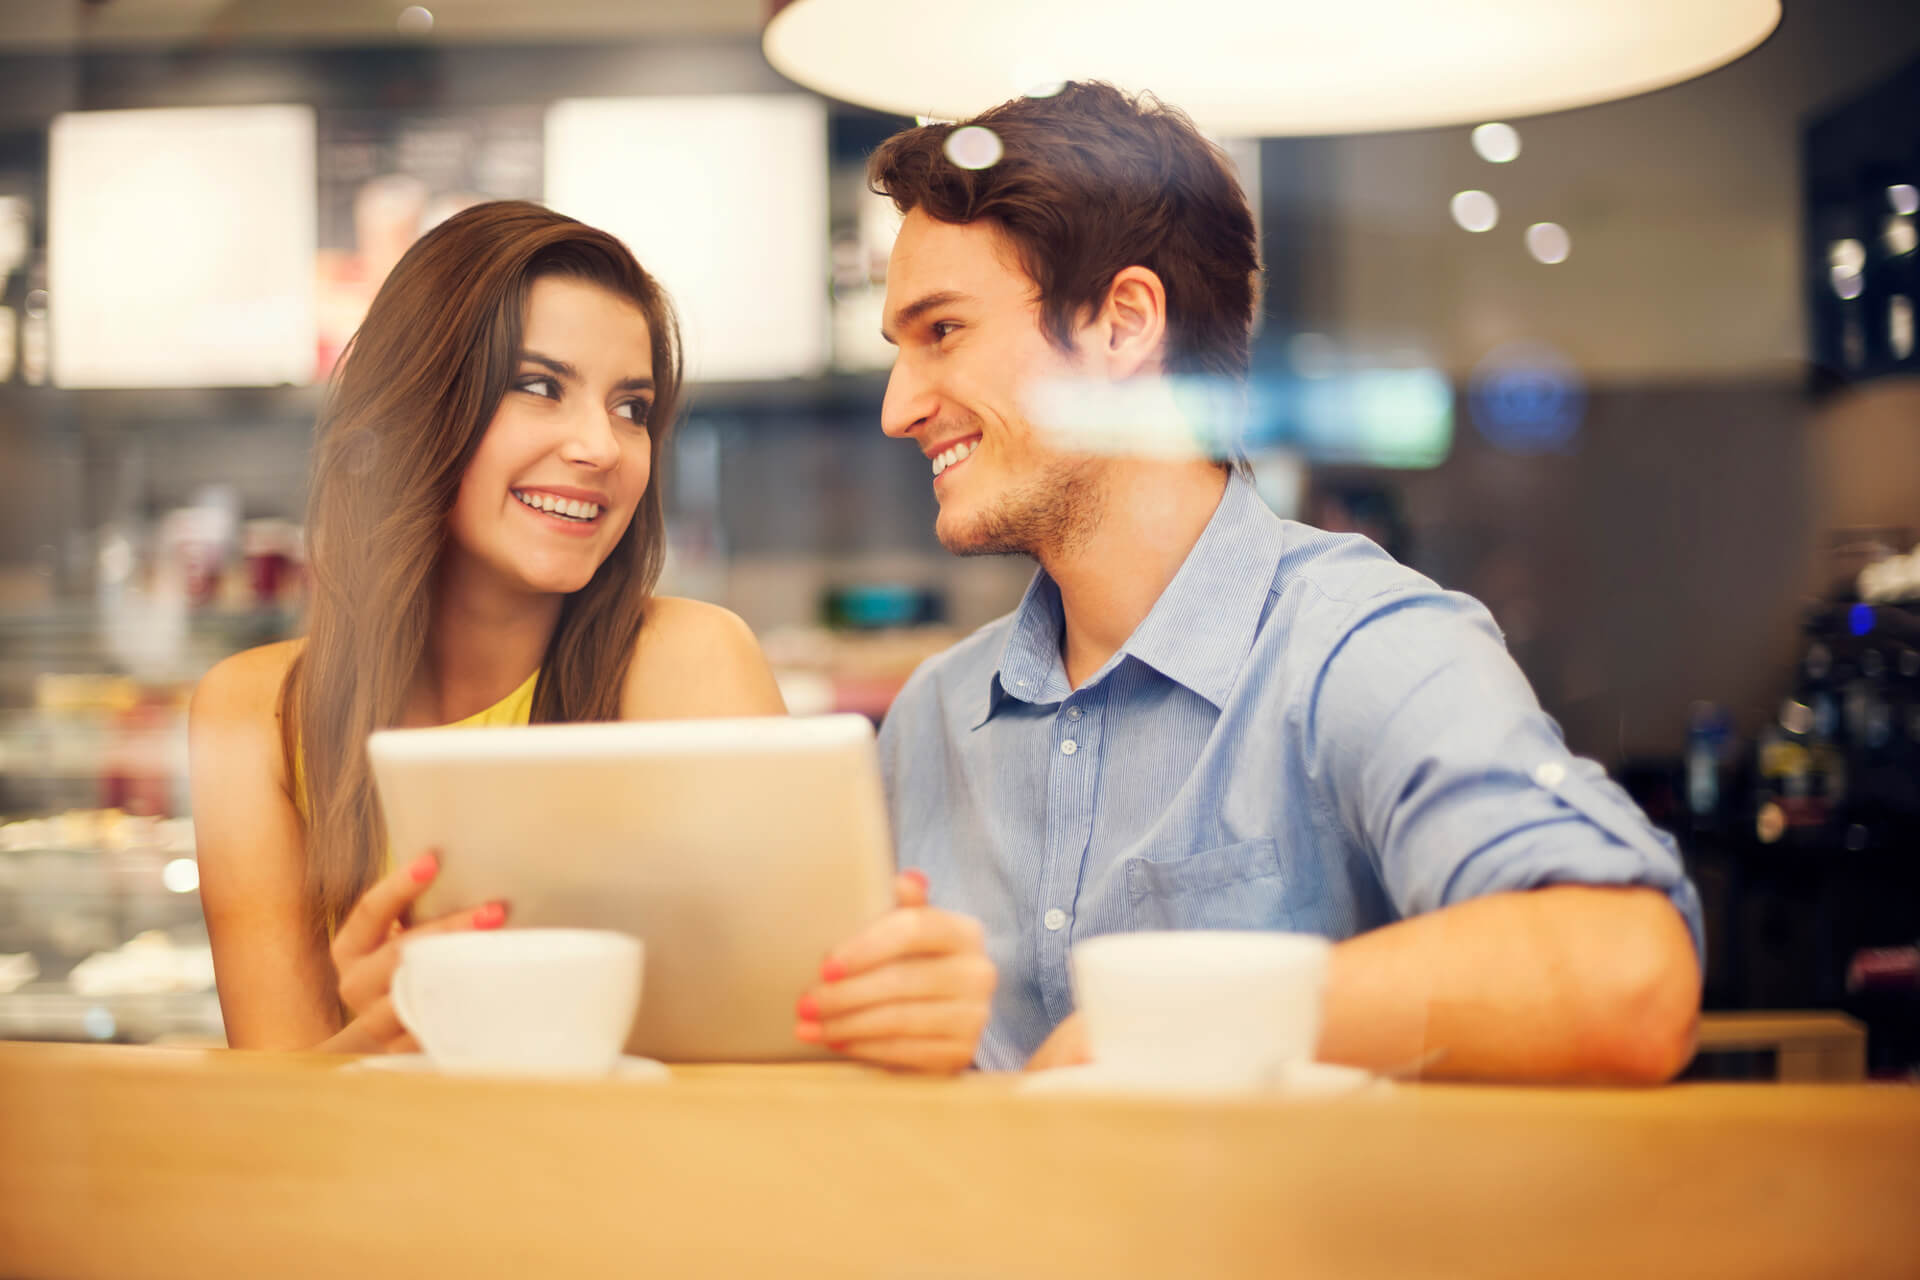 How to turn online dating into relationship